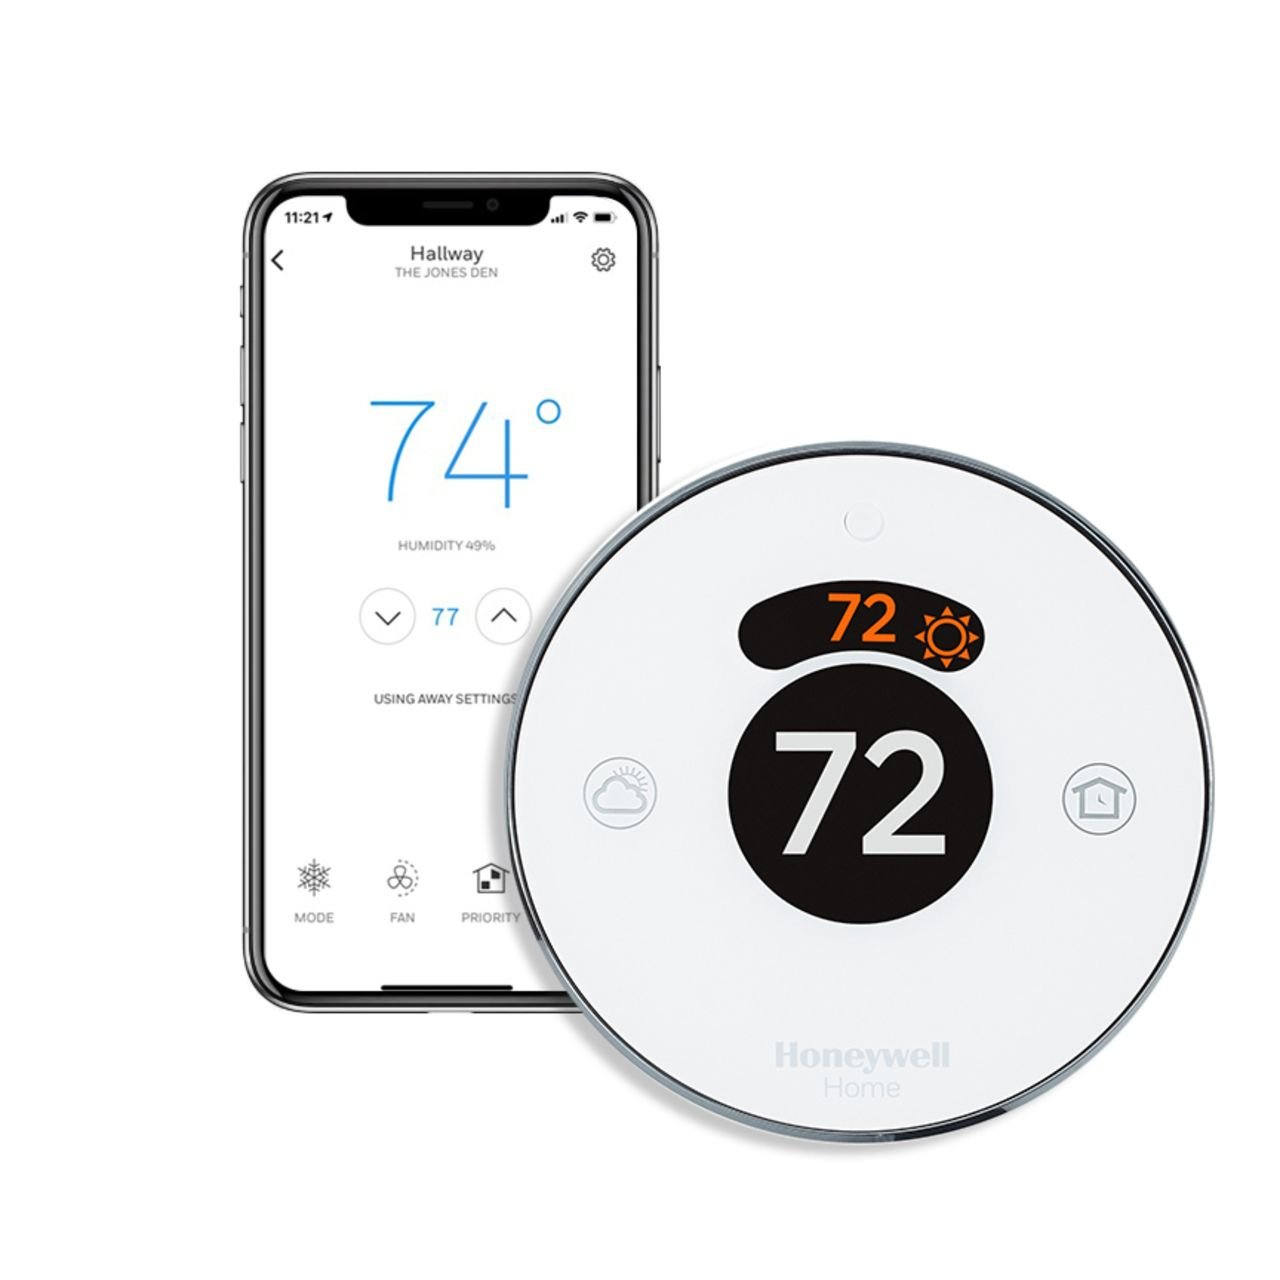 Imagine a thermostat that adapts to you. The Round® Smart